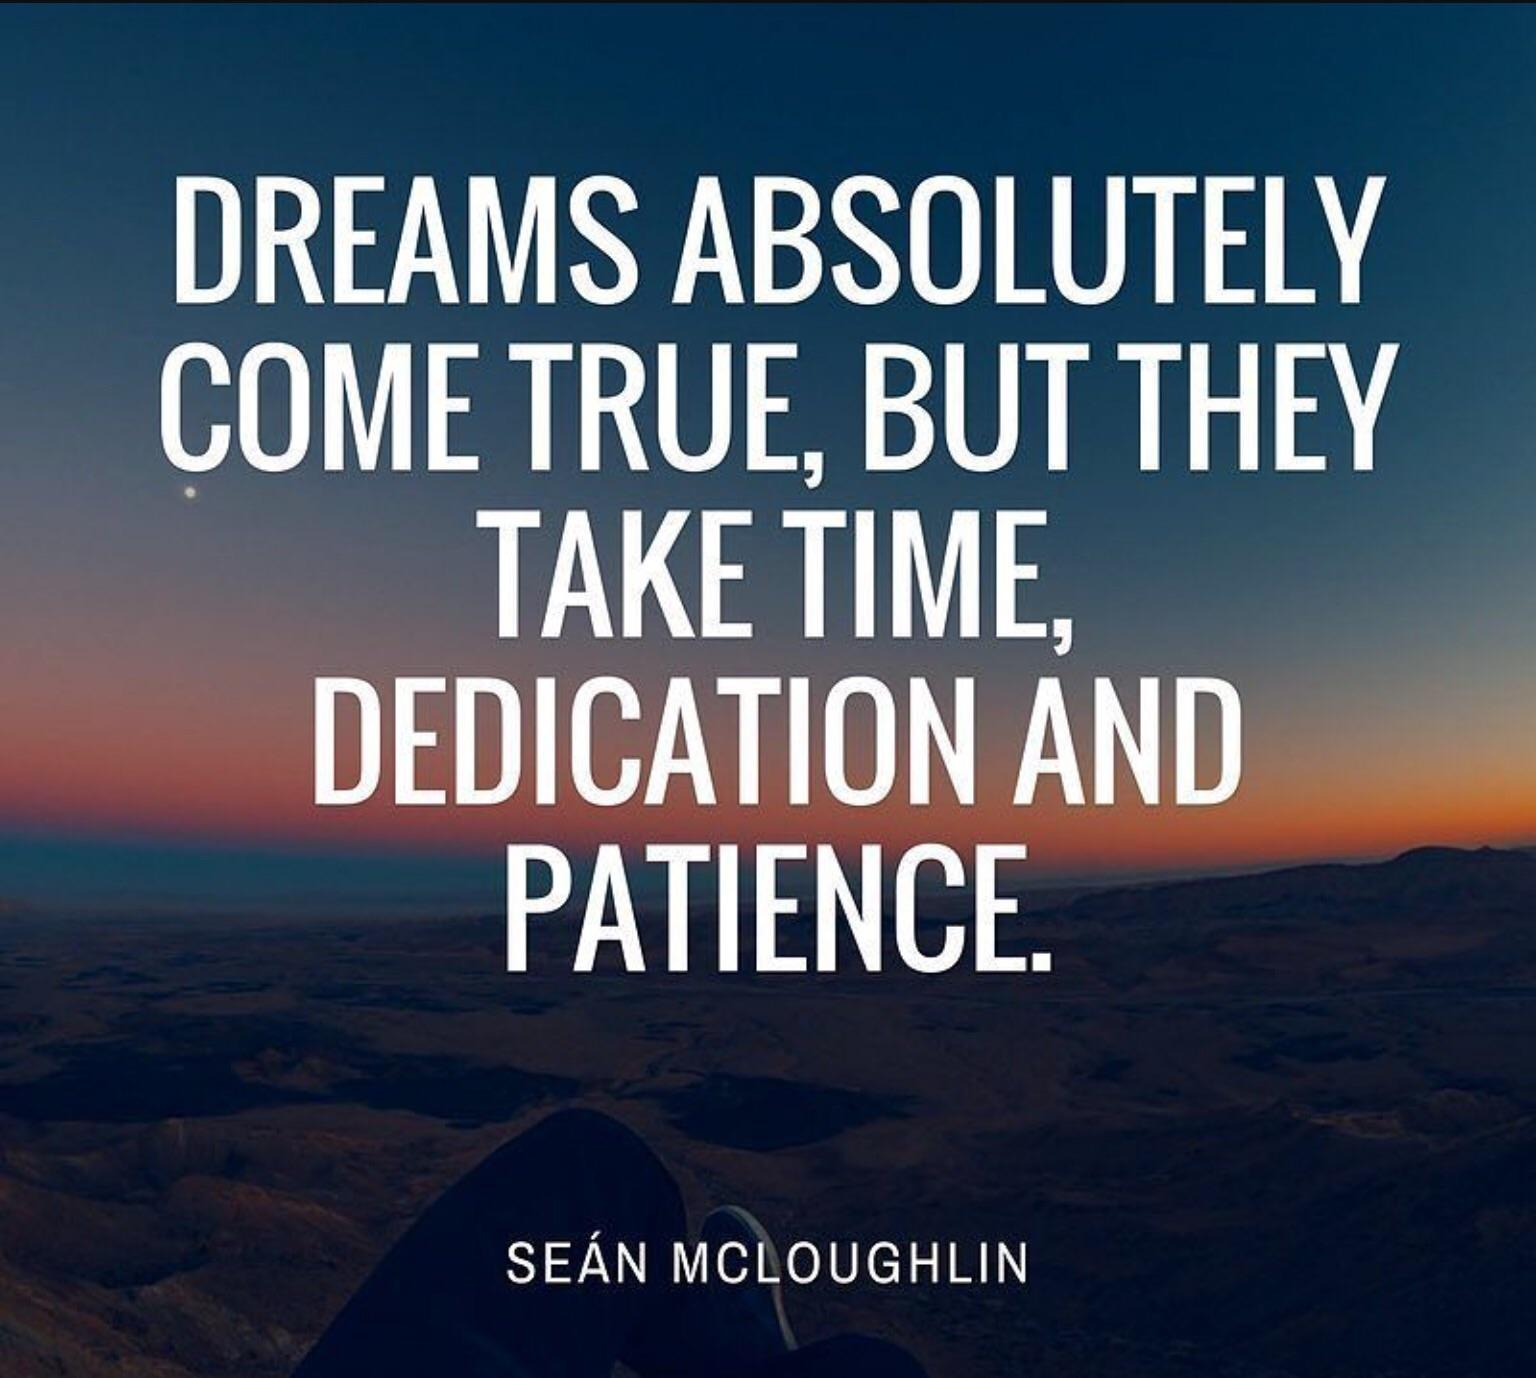 Dreams absolutely come true, but they take time, dedication and patience. – Sean Mcloughlin